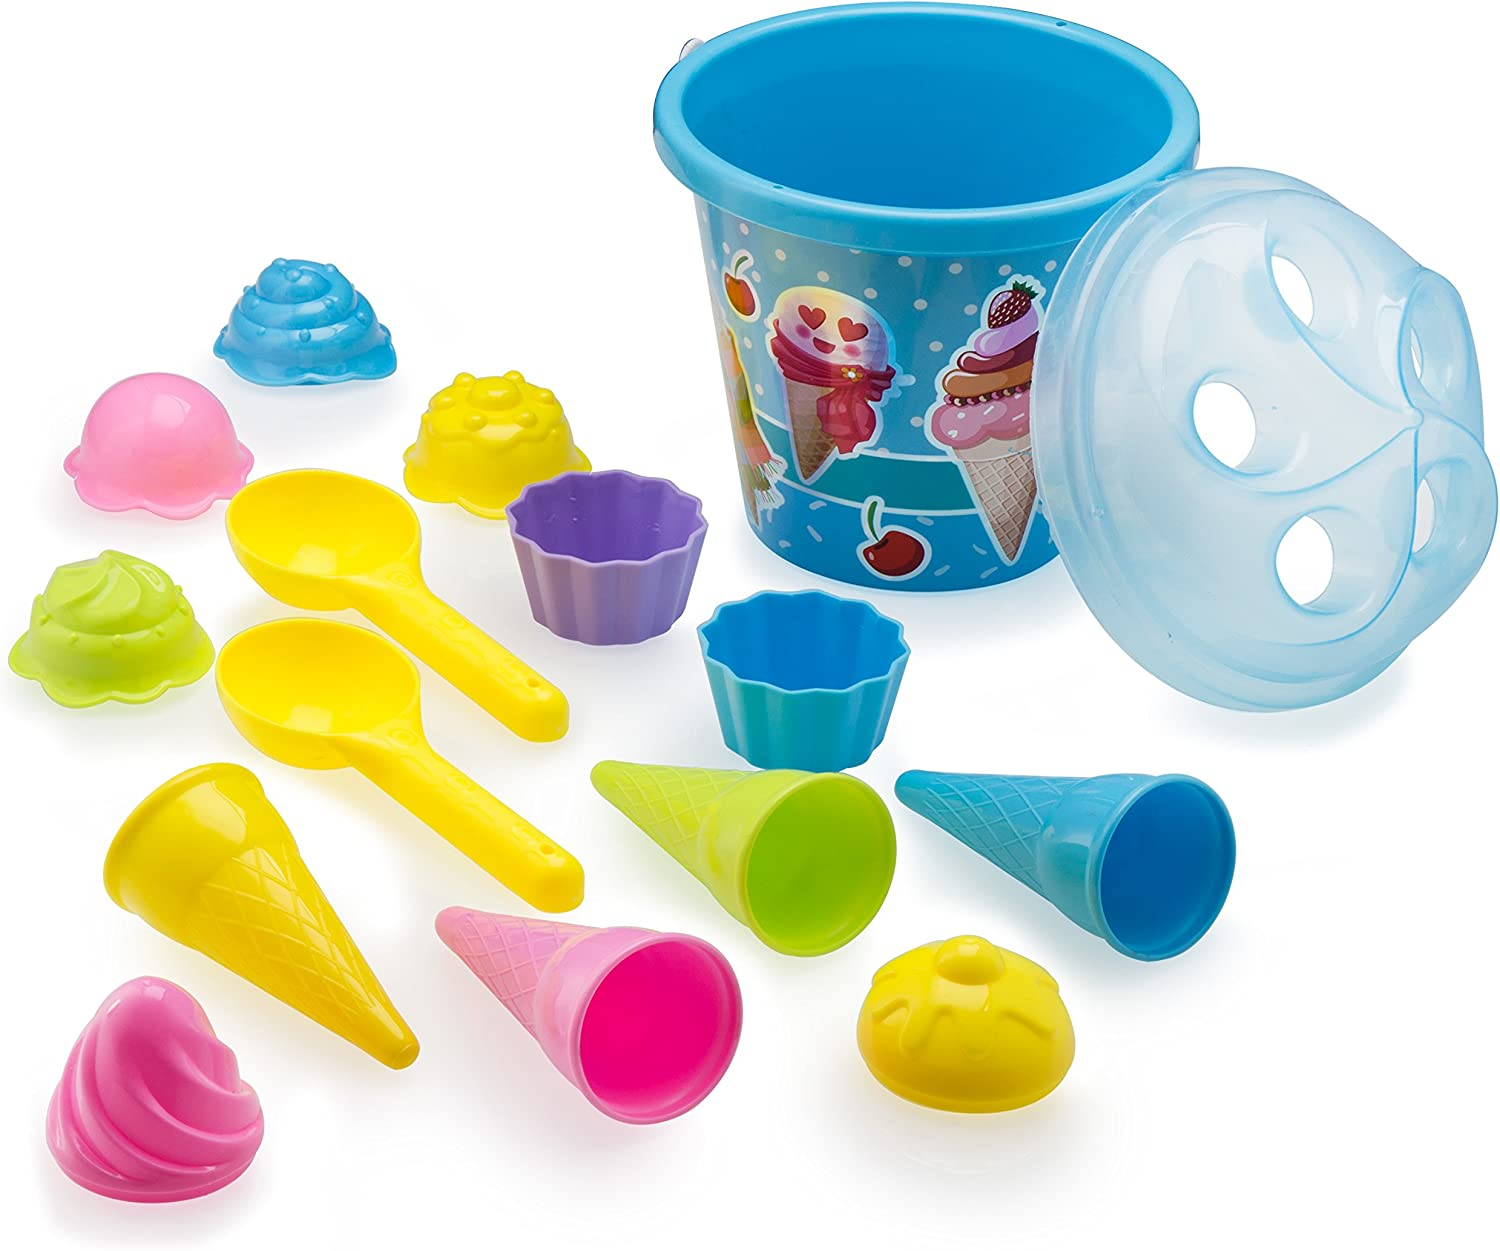 """Top Race Beach Toys, Sand Toys, 16 Piece Ice Cream Mold Set for Kids 3-10 with Large 9"""" Beach Toy Bucket Pail for Kids and Toddlers (Blue): Toys & Games"""